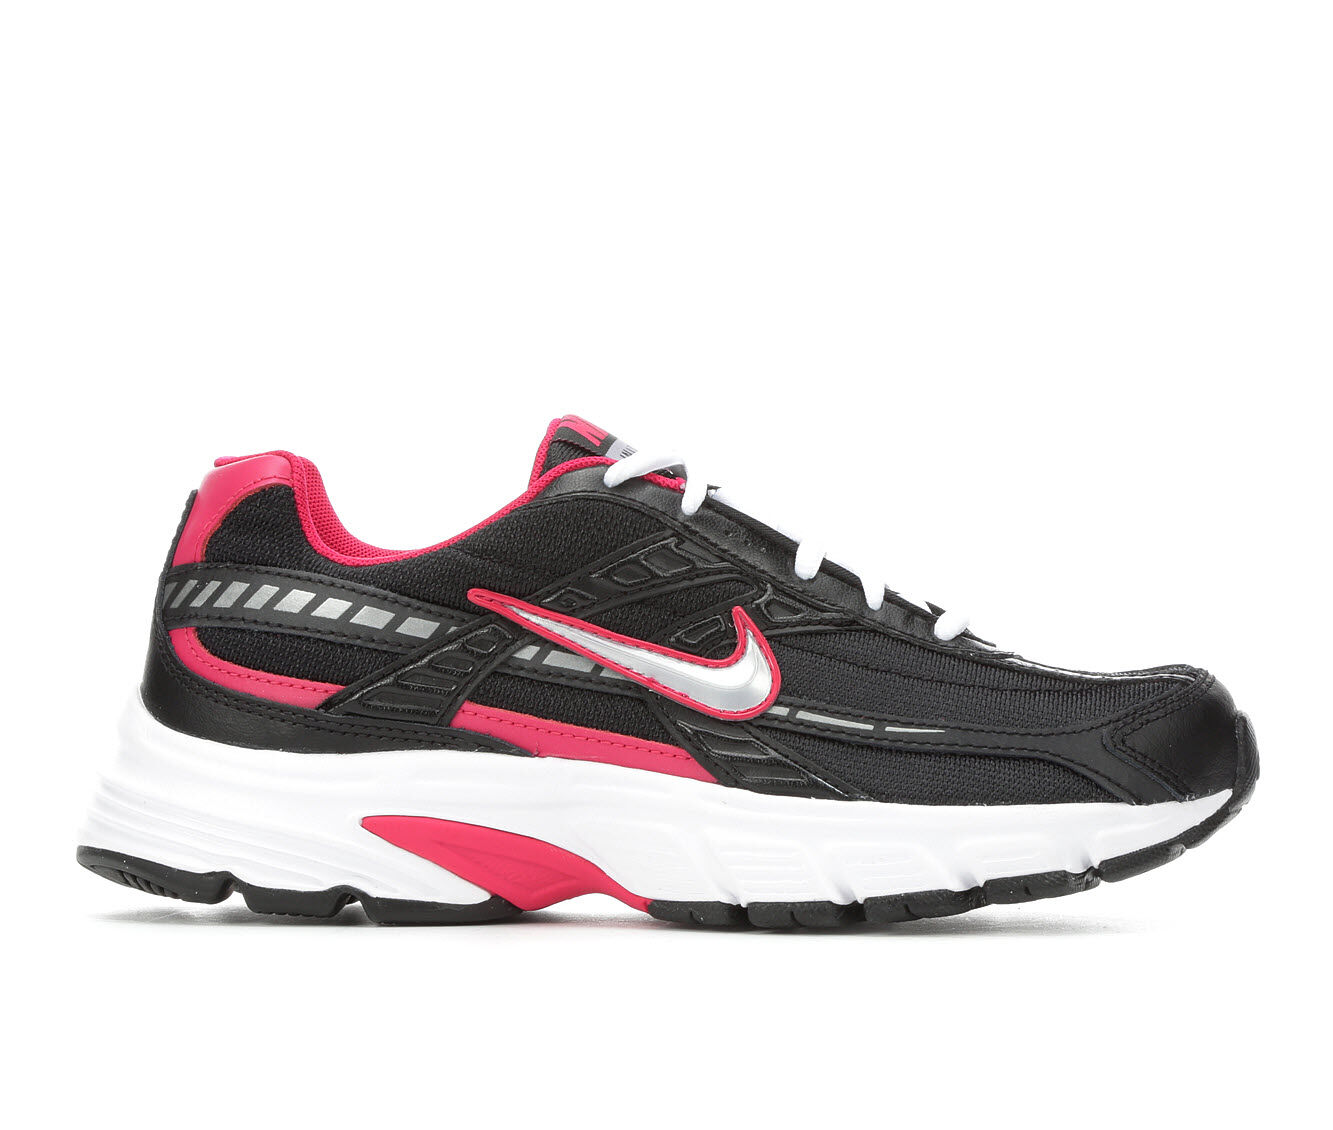 Women's Nike Initiator Running Shoes Black/Pink/Wht